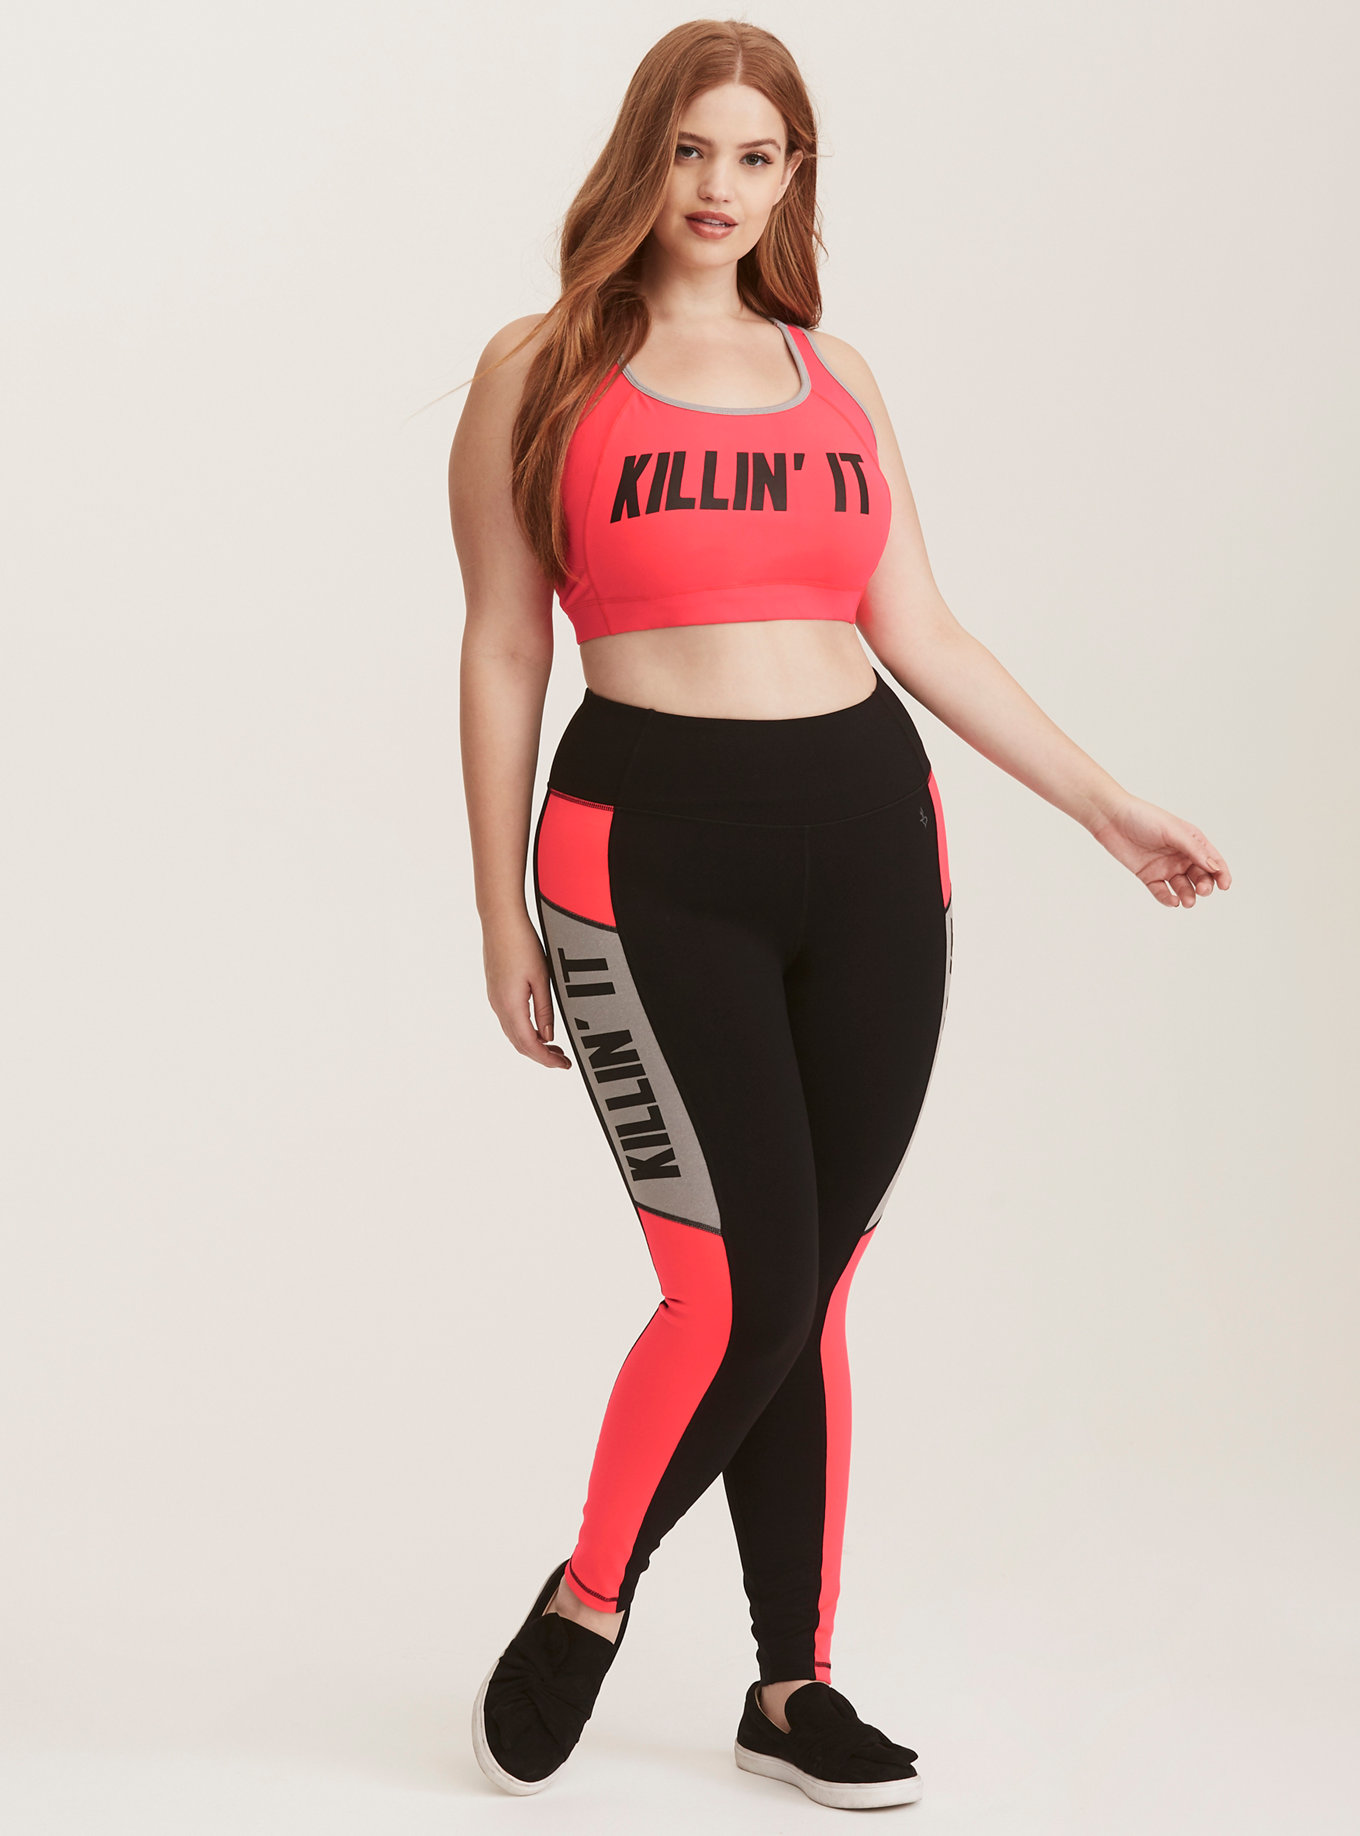 be40837278030 Function & Style: Plus Size Activewear to Jumpstart Your Fitness Goals